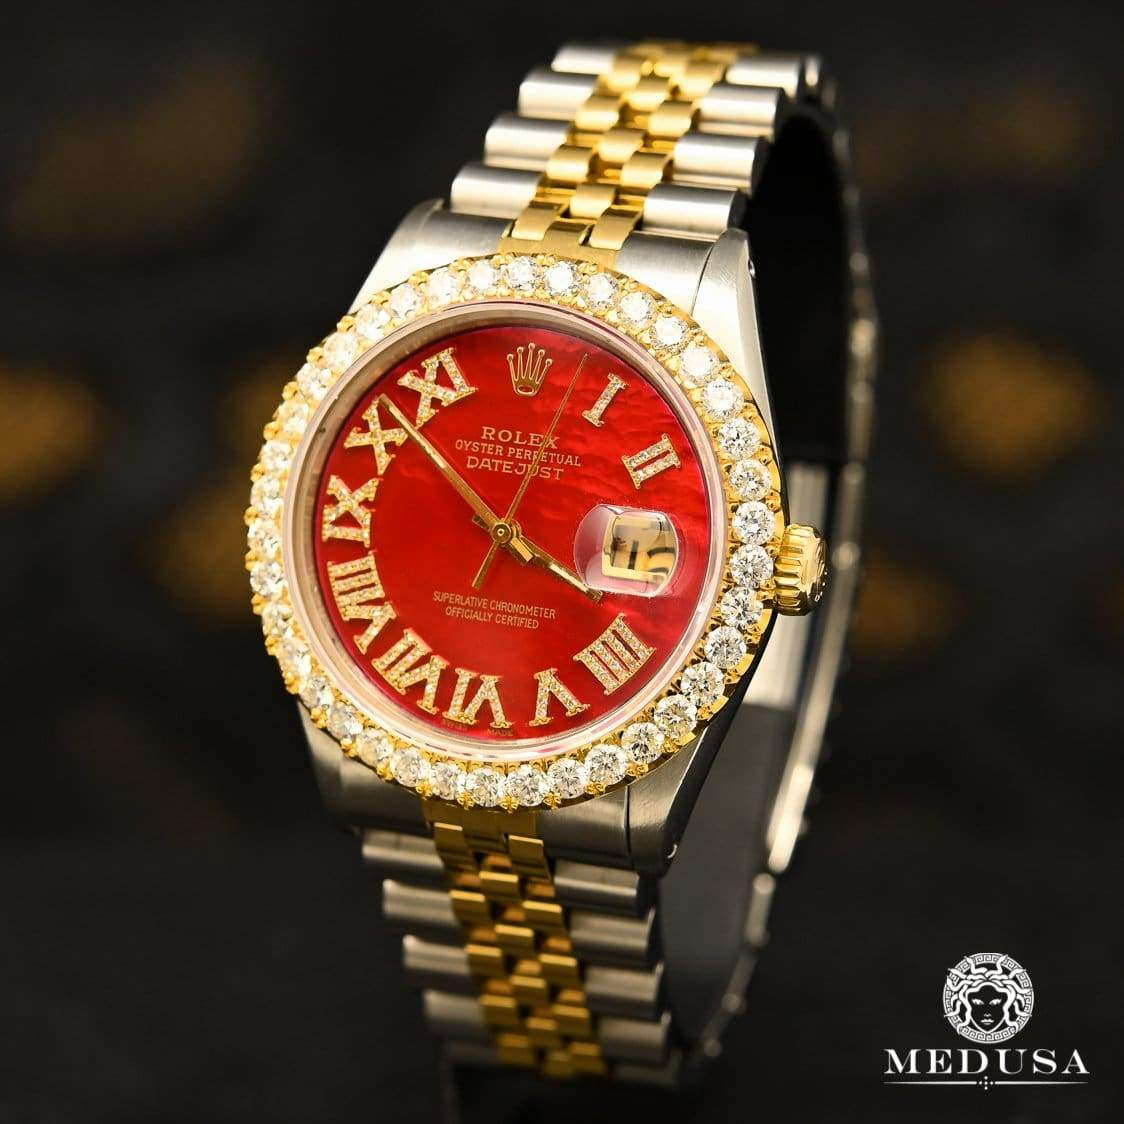 36mm Datejust Diamant In-Stock Jubilee - Rolex Datejust 36mm - Rouge Chiffre Romain Montre Homme Bijoux Medusa - Canada Quebec Chicoutimi